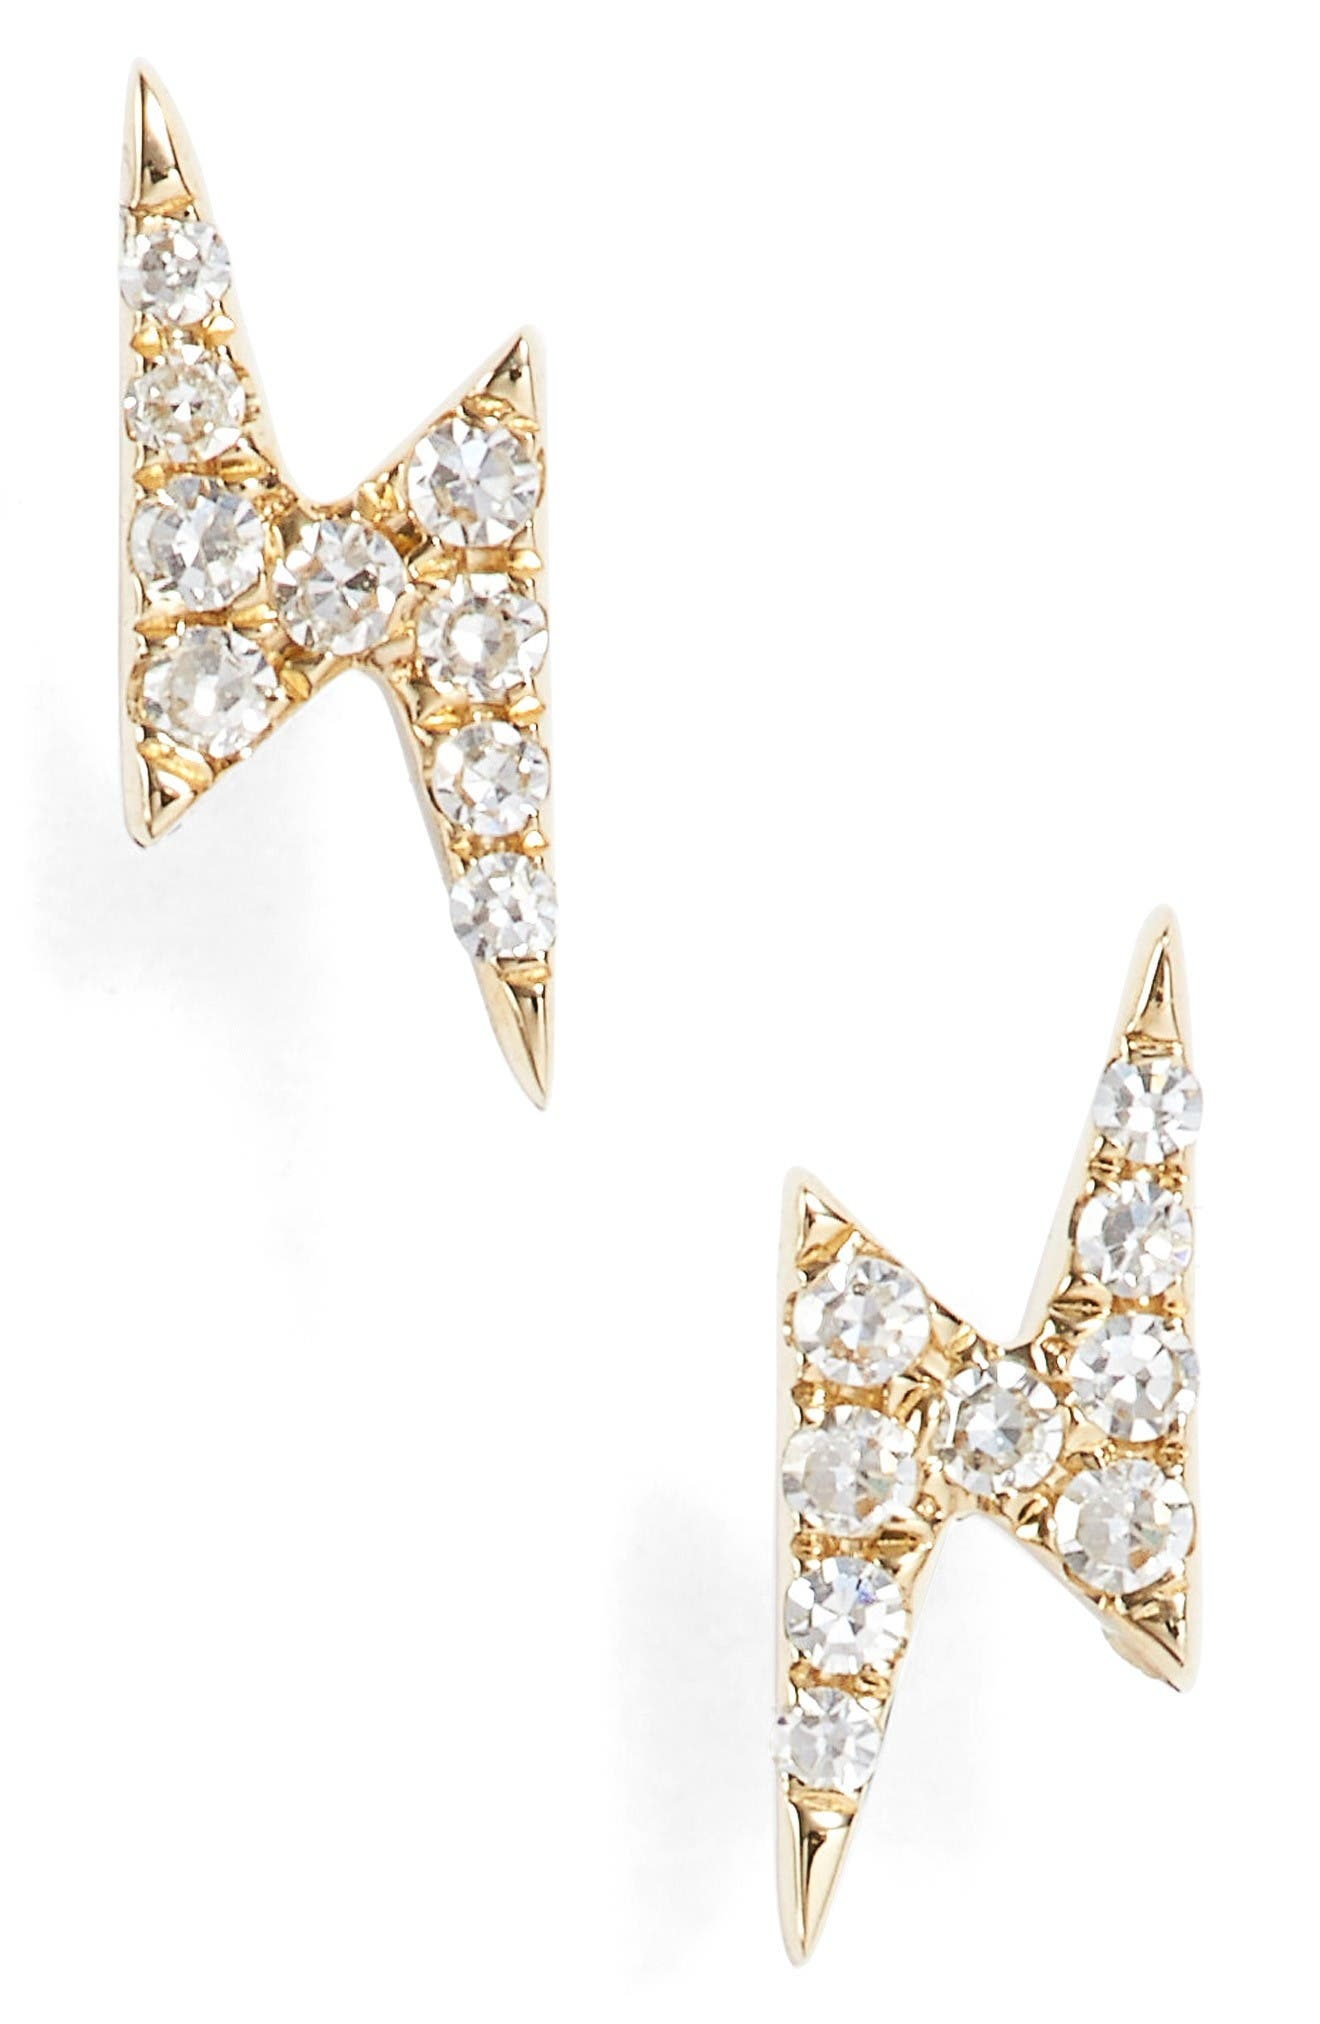 Diamond Stud Earrings,                         Main,                         color, Yellow Gold